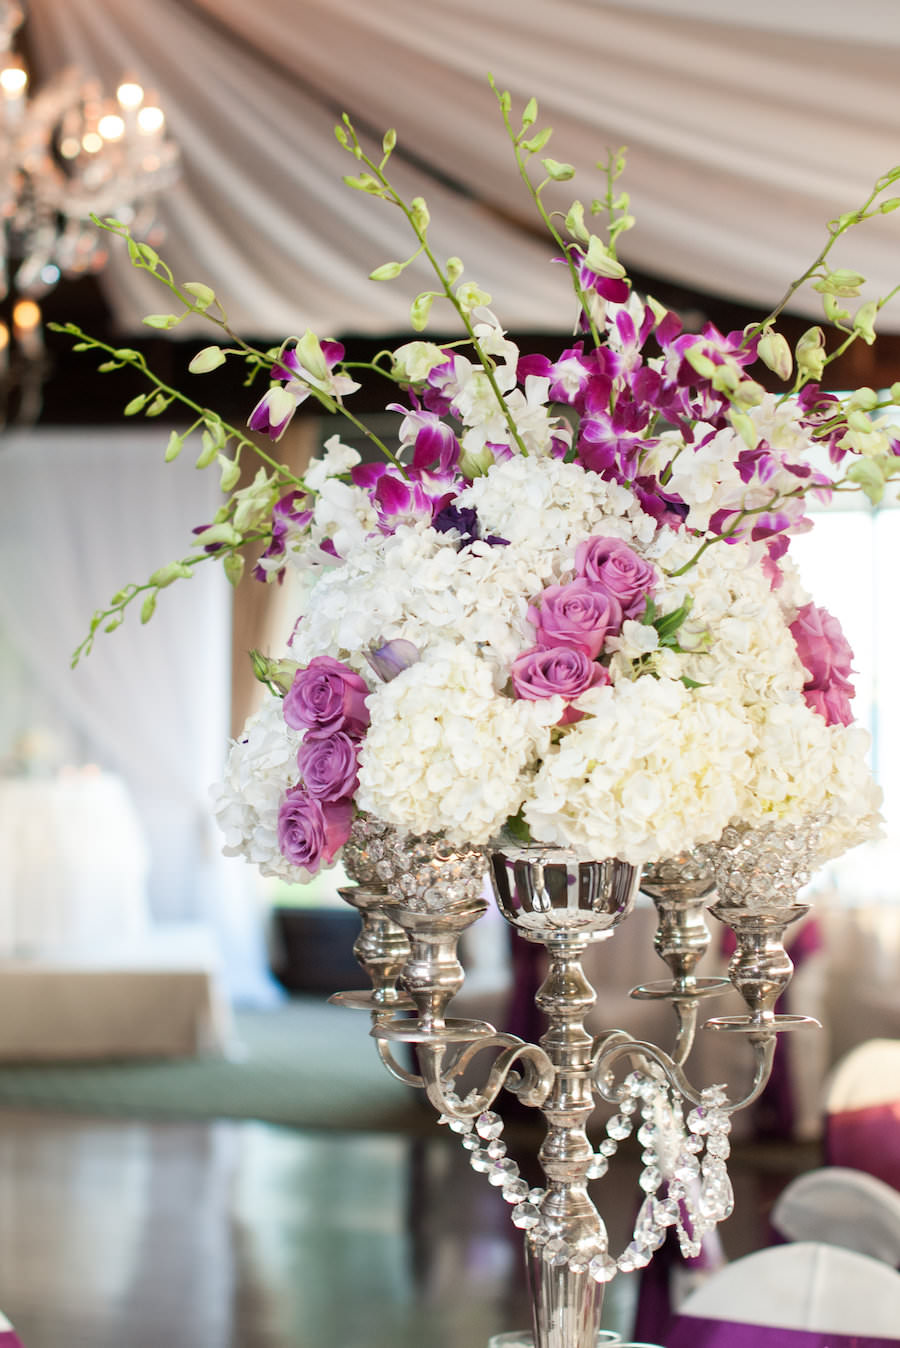 Tampa Wedding Reception Table Decor with Purple and White Floral Centerpieces with Candelabra